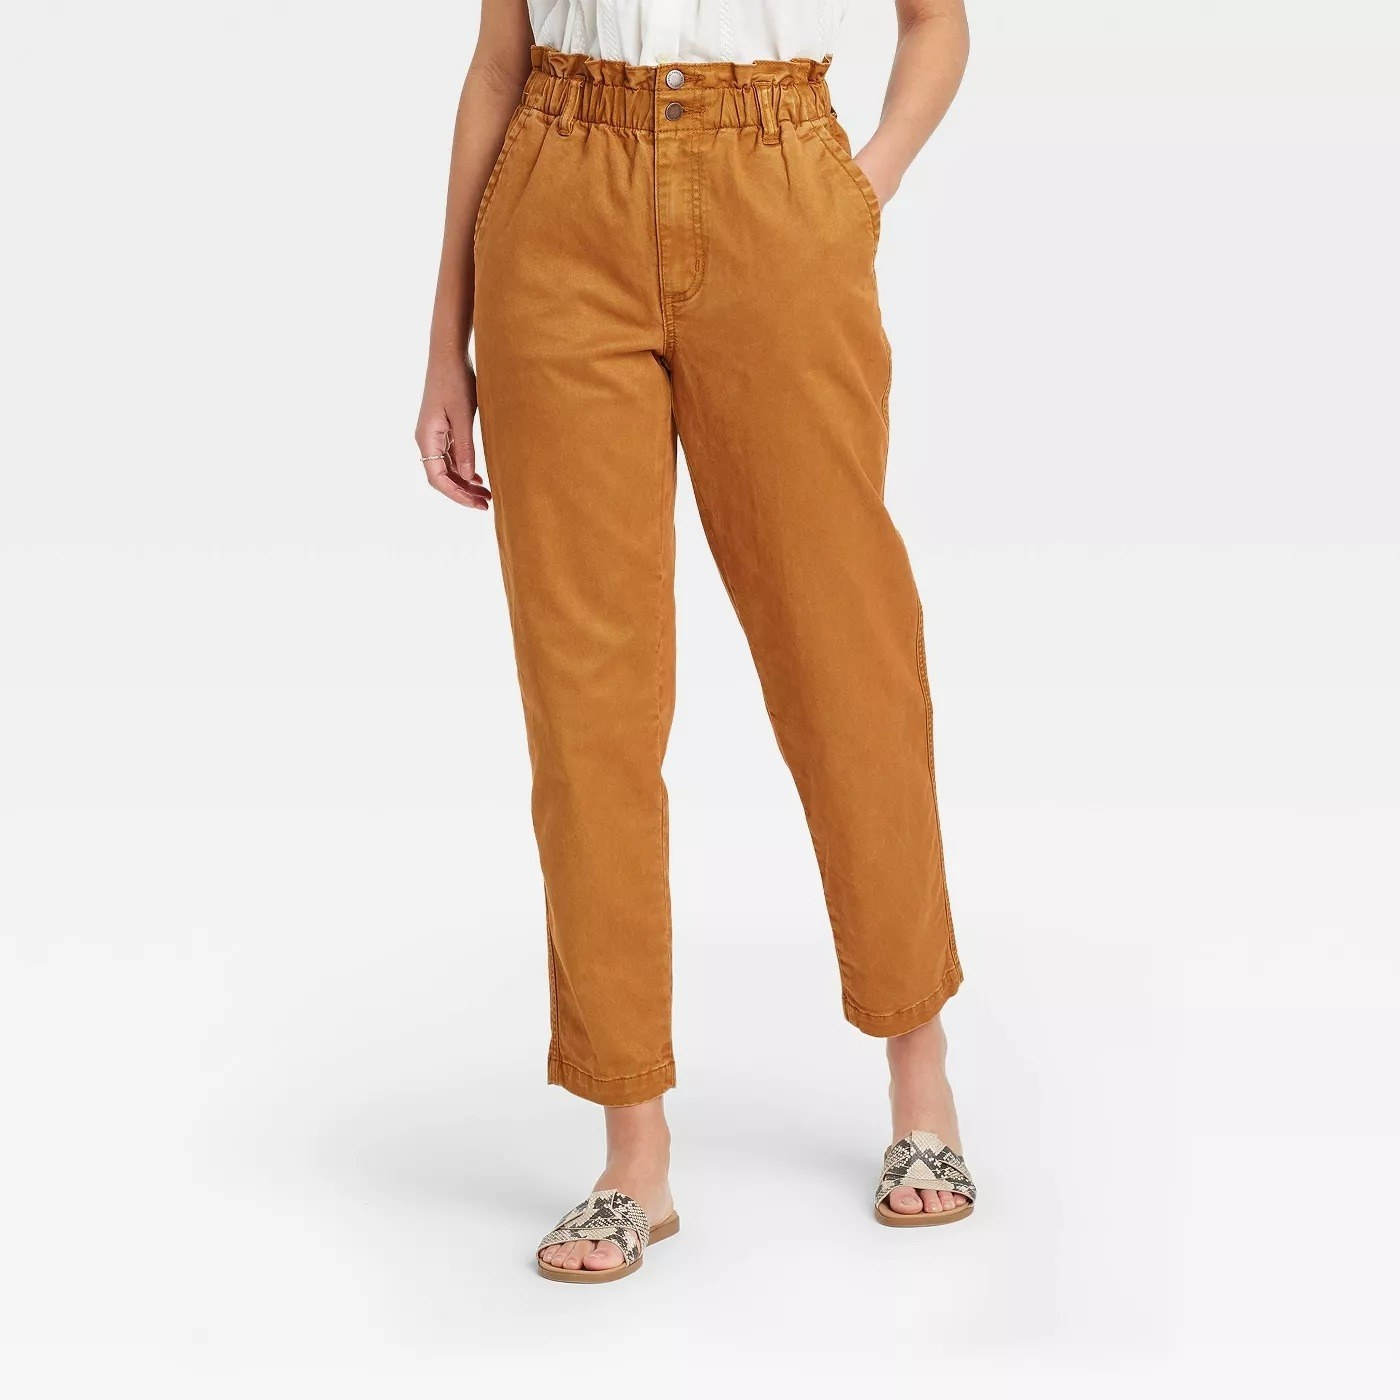 Model wearing mustard yellow pants with two pockets, stops at ankle